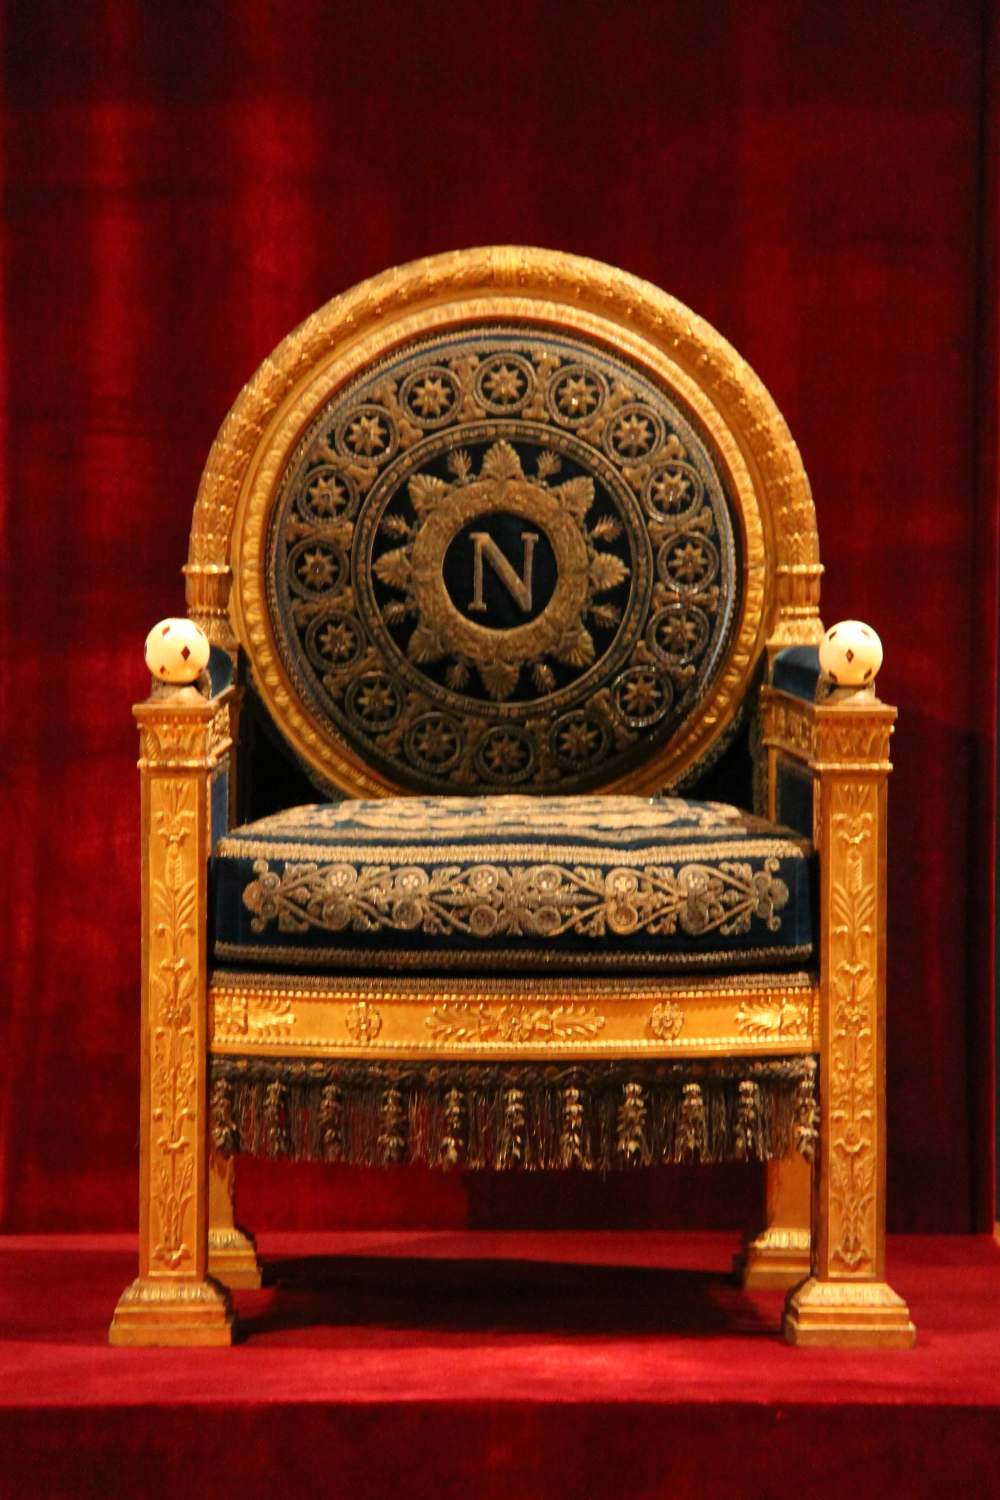 The Throne Of Napoleon And A Medallion Travel Moments In Time